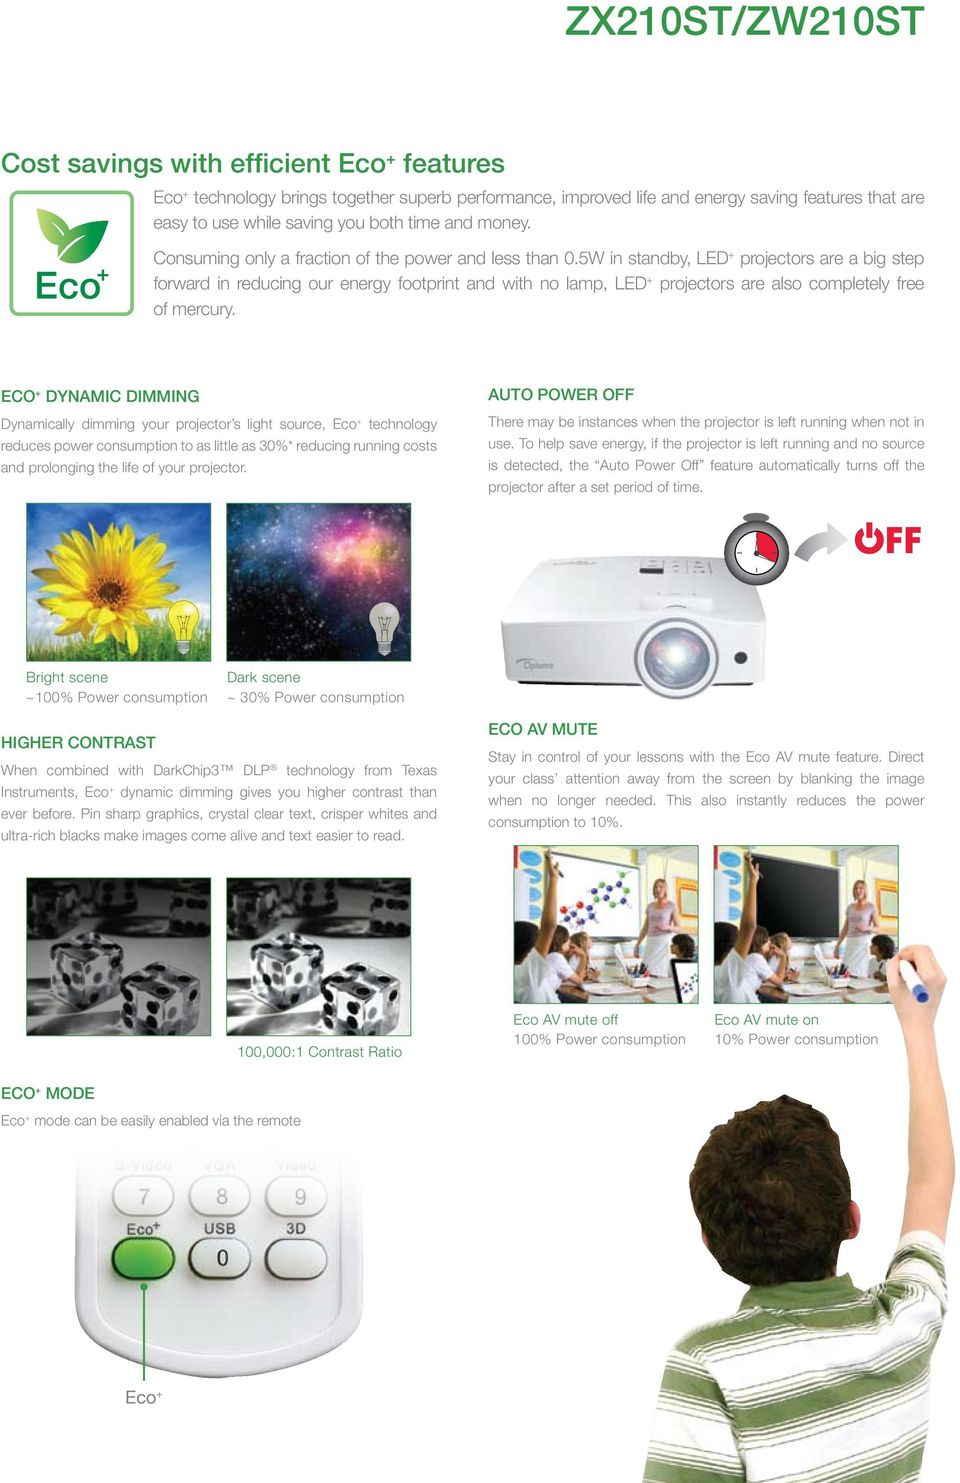 5W in standby, projectors are a big step forward in reducing our energy footprint and with no lamp, projectors are also completely free of mercury.